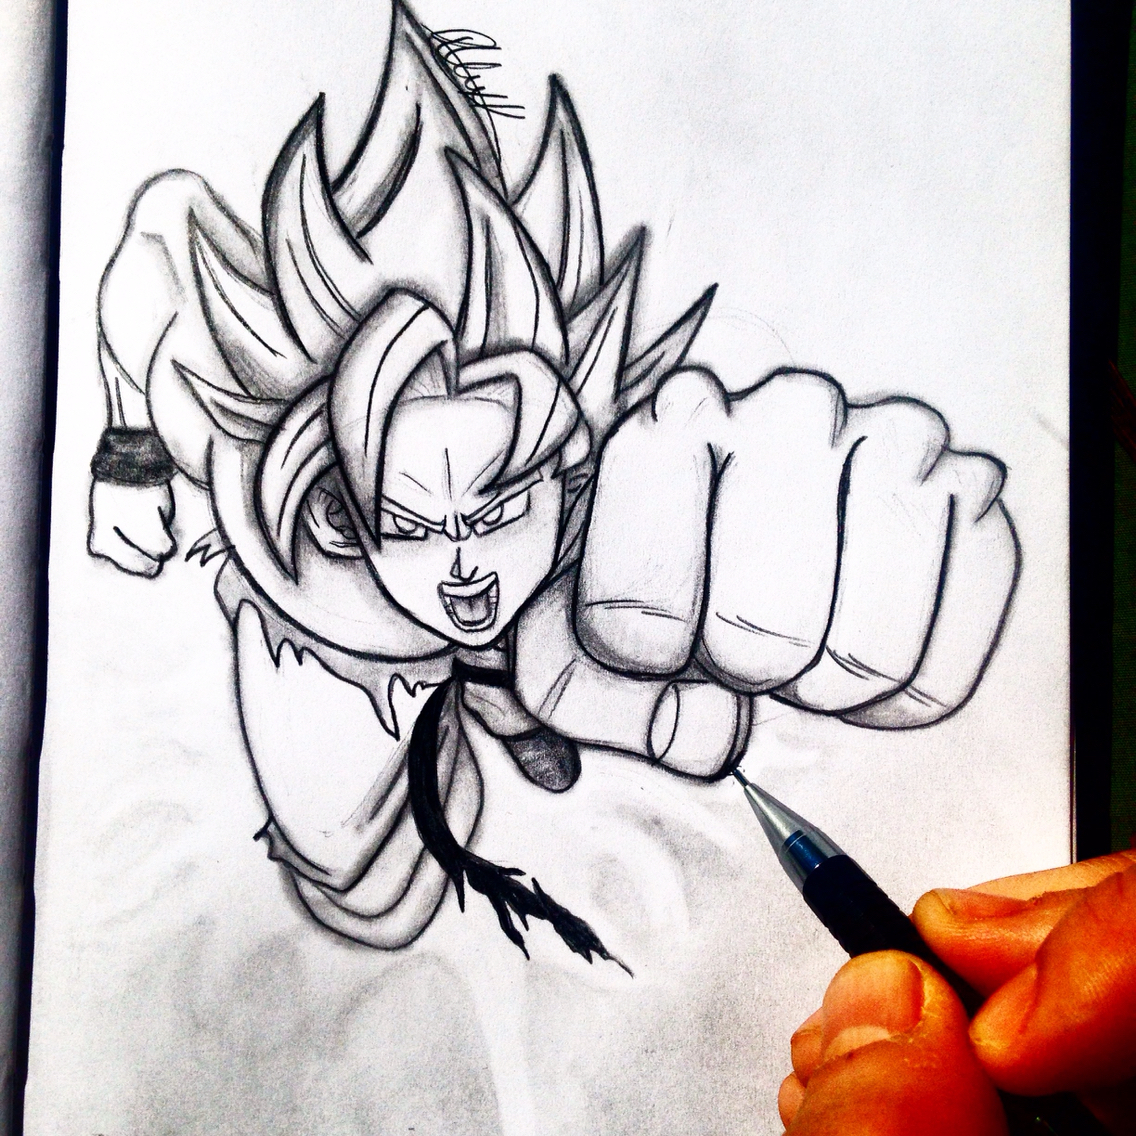 1136x1136 3d Pencil Drawings Of Dragon Ball Z Artalex Khleif. Pencil Sketch